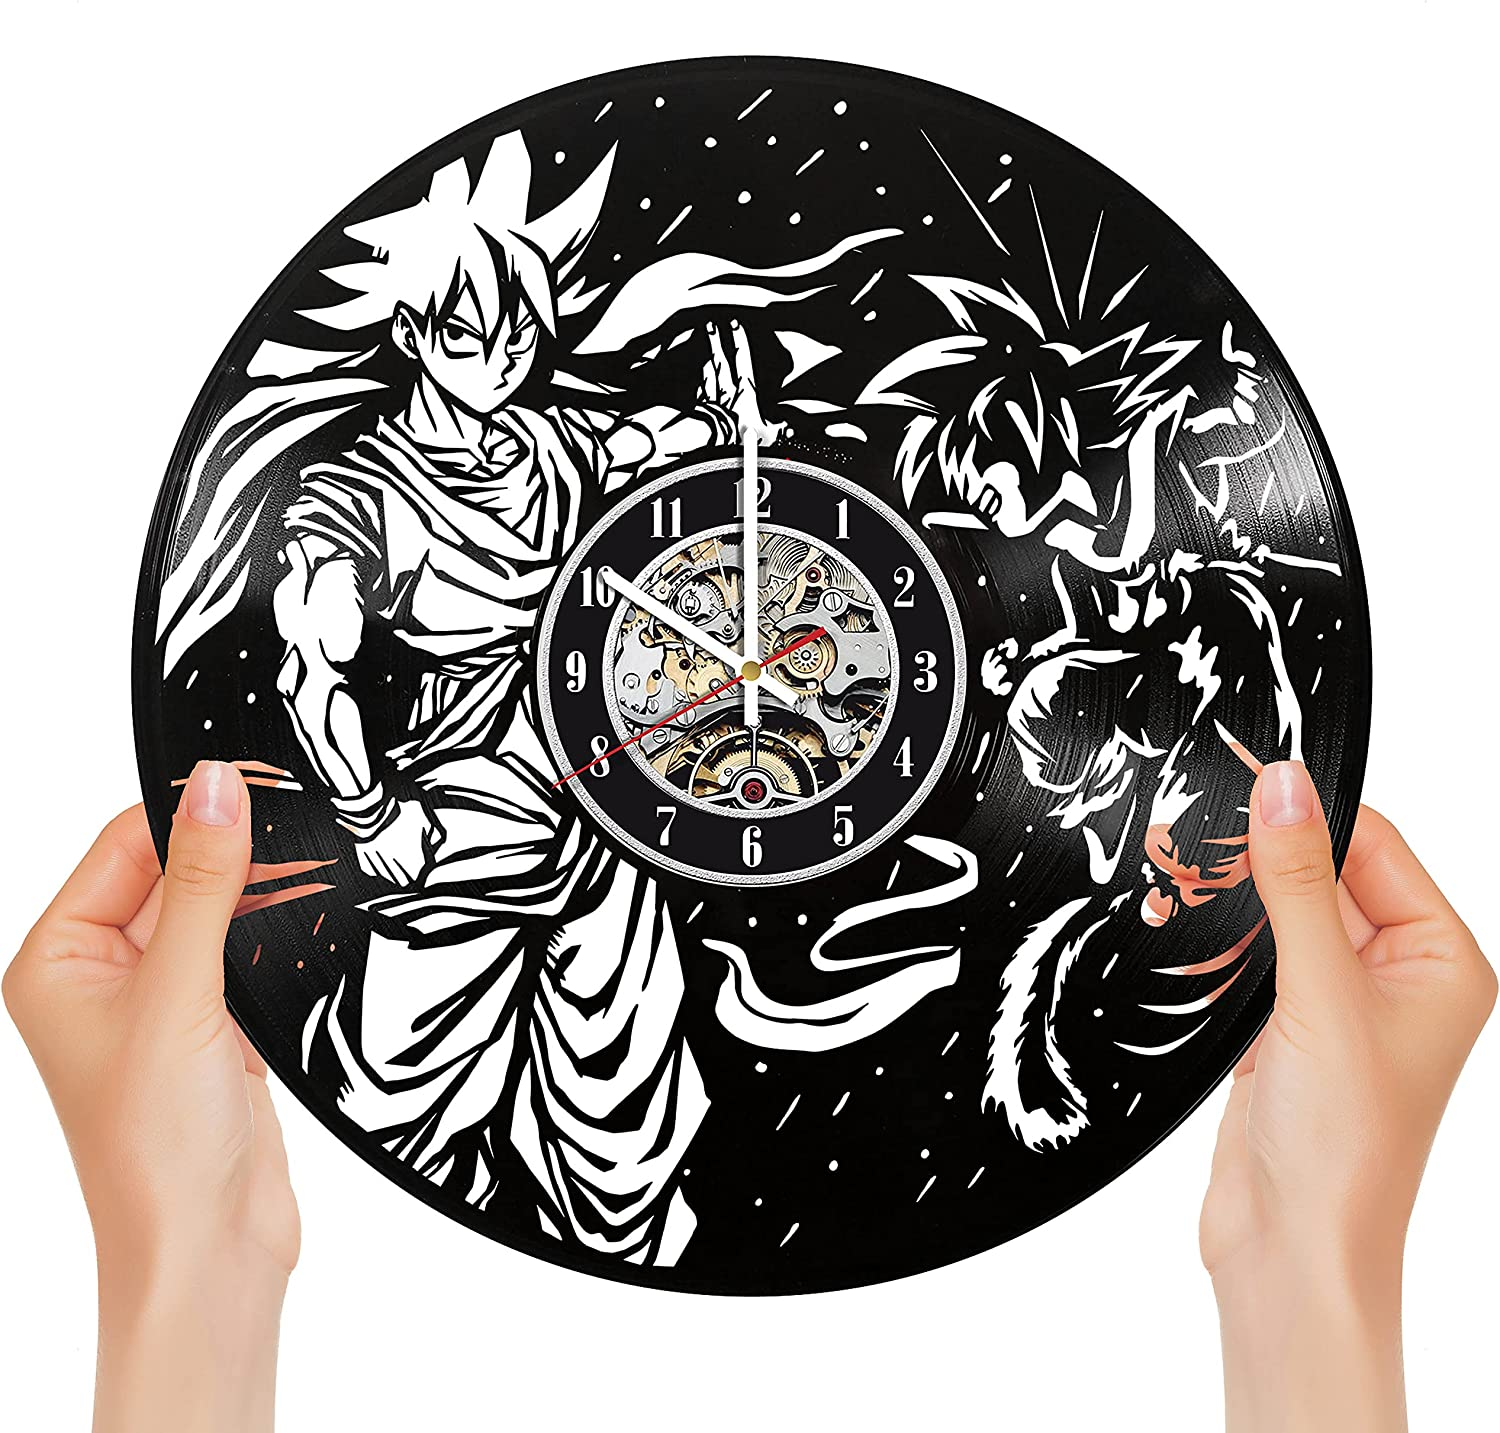 Exquisite Goku Outlet Detroit Mall sale feature Vinyl Clock Designed Limited in Edit Brooklyn